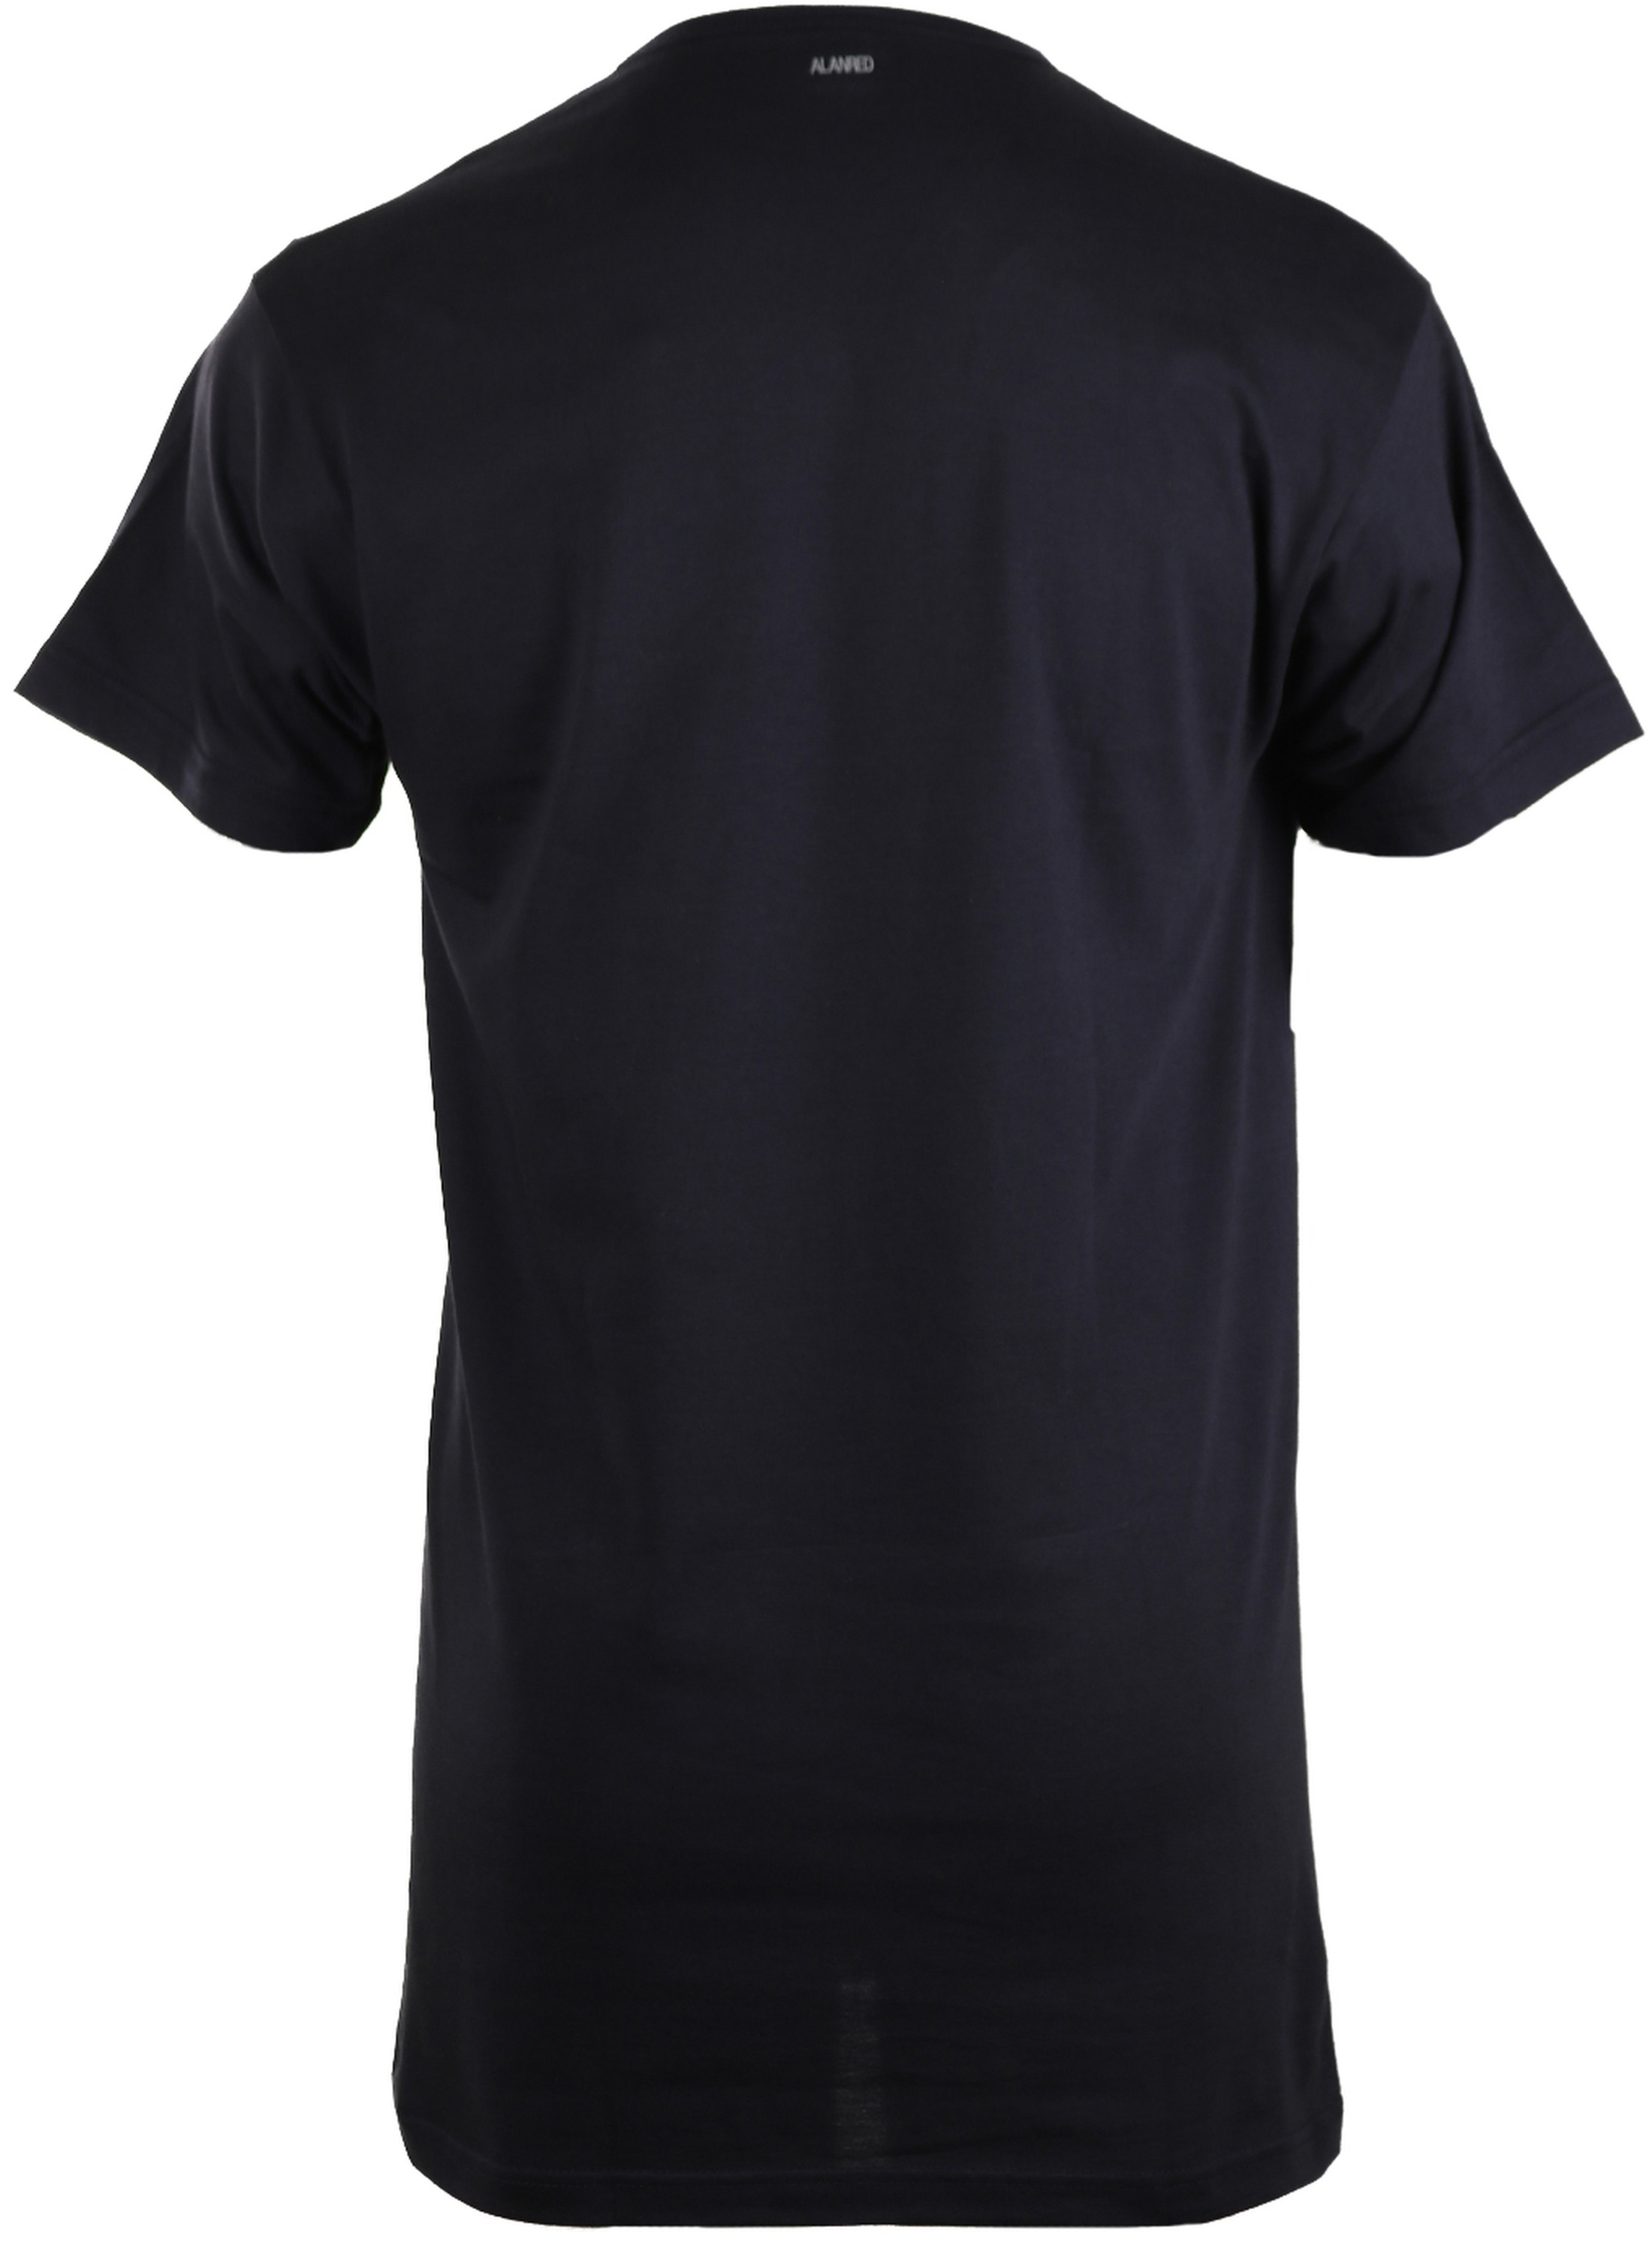 Alan Red Extra Long T-Shirt Vermont Navy (1pack) foto 2